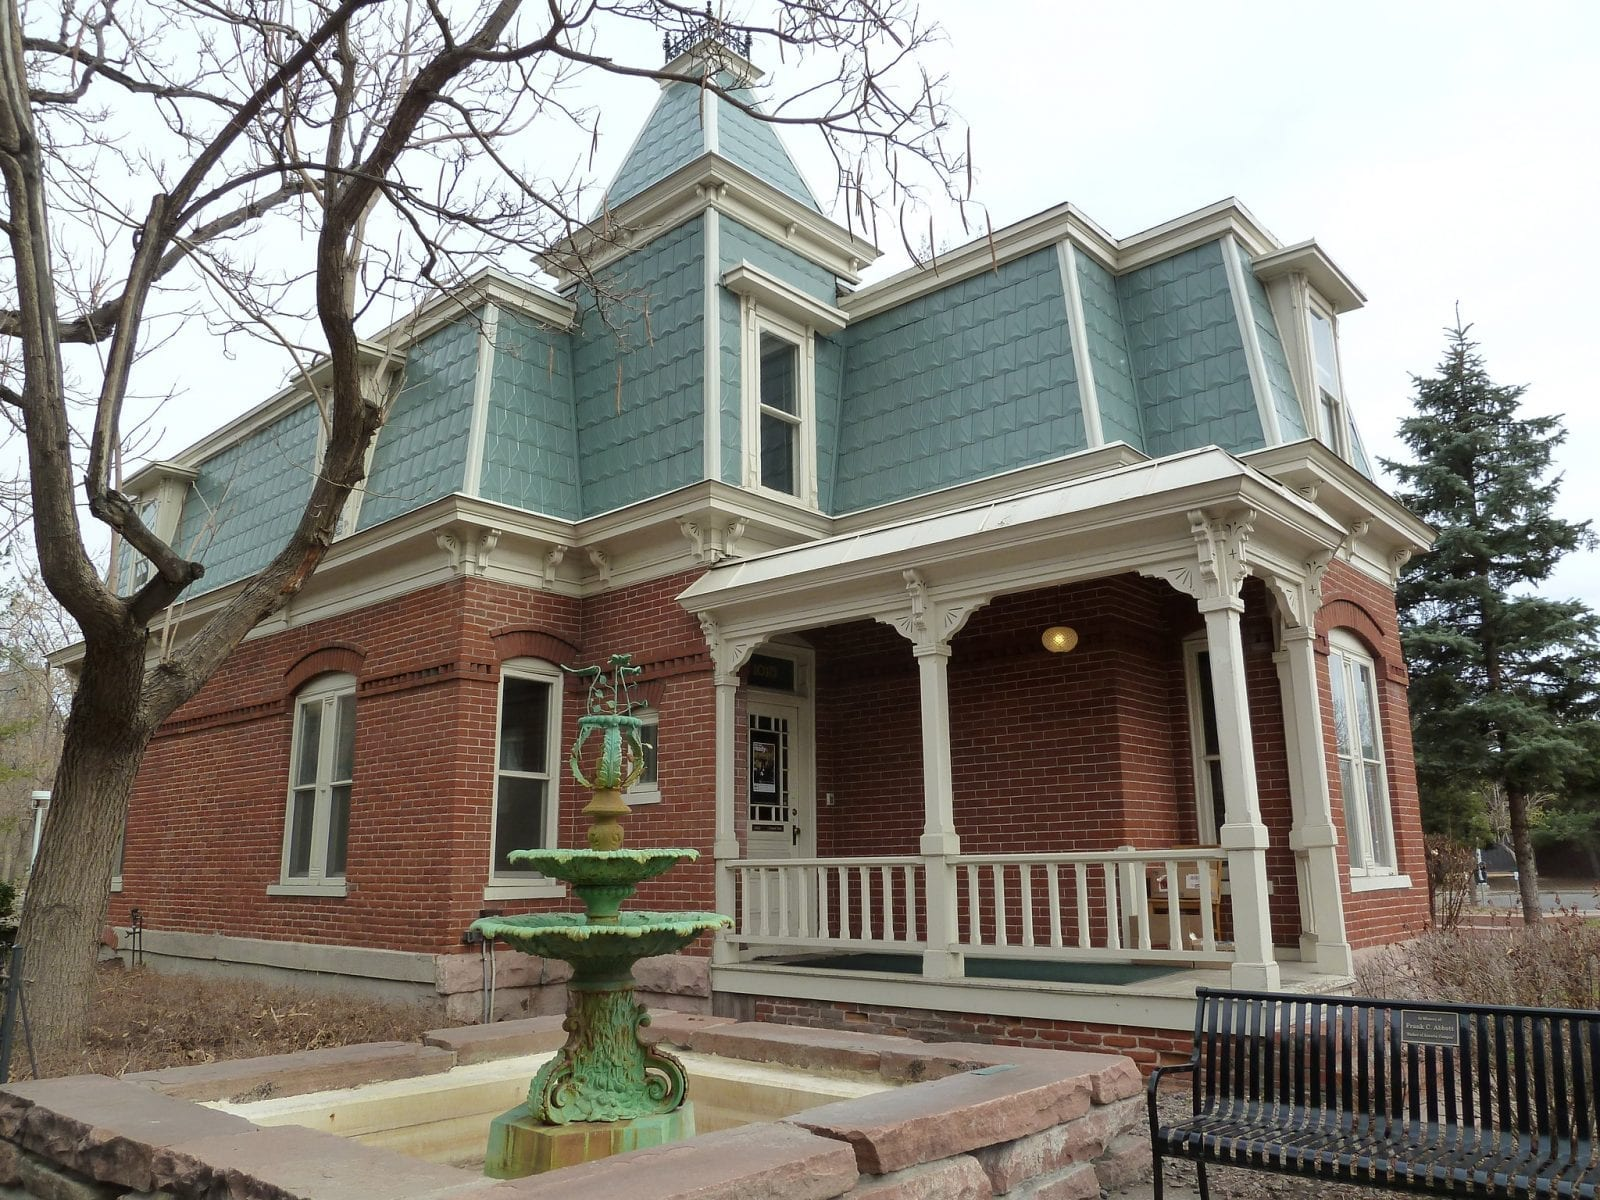 Image of one of the houses in the Ninth Street Historic Park in Denver, Colorado